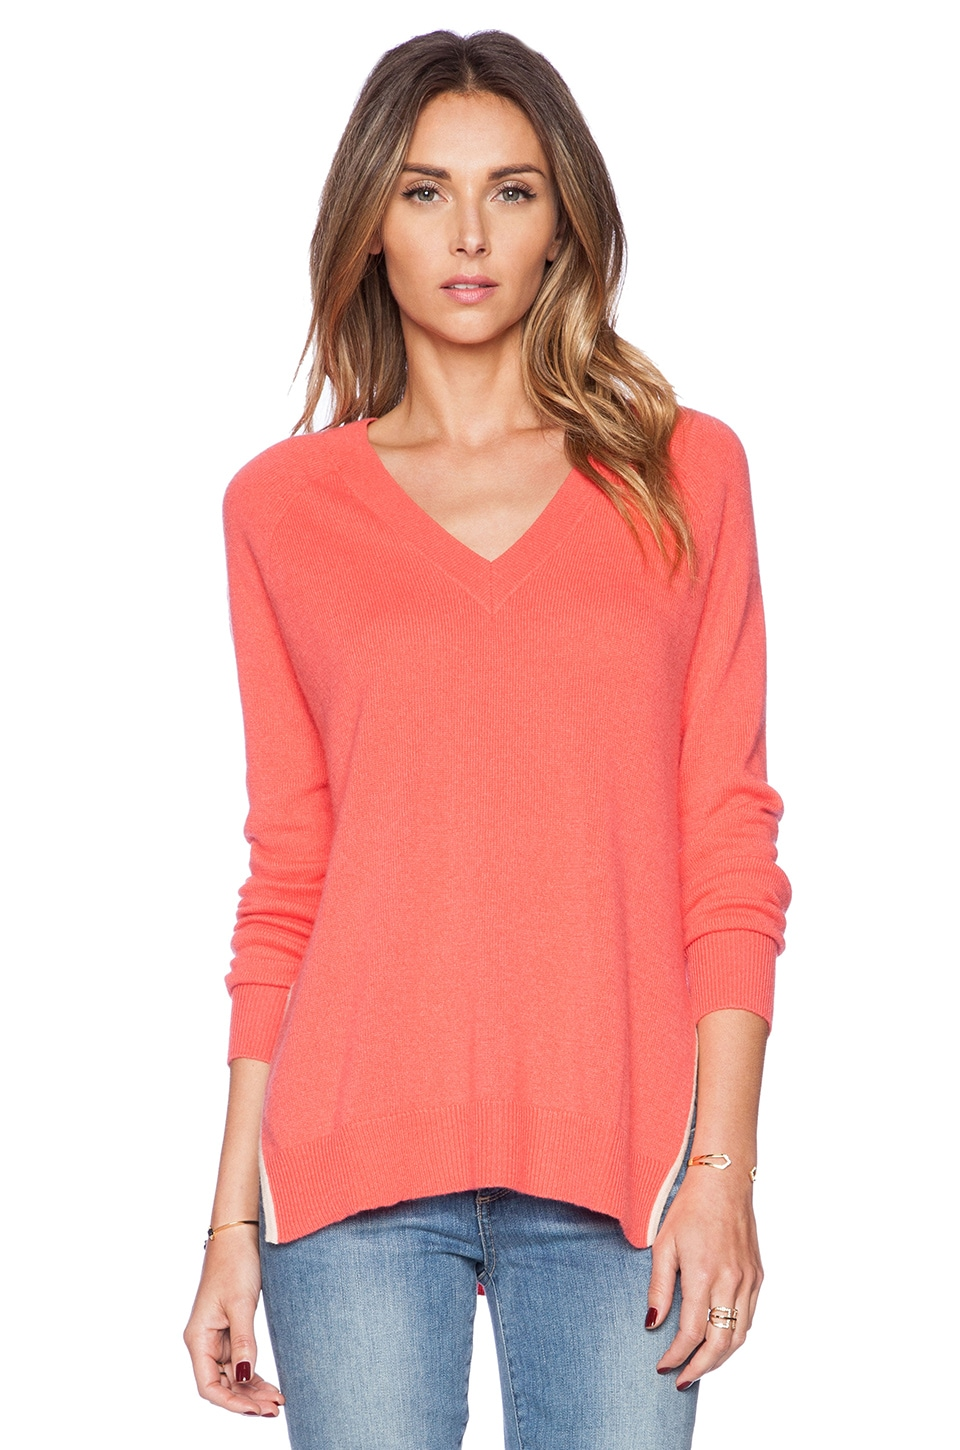 Autumn Cashmere Deep V Tunic in Marmalade & Latte